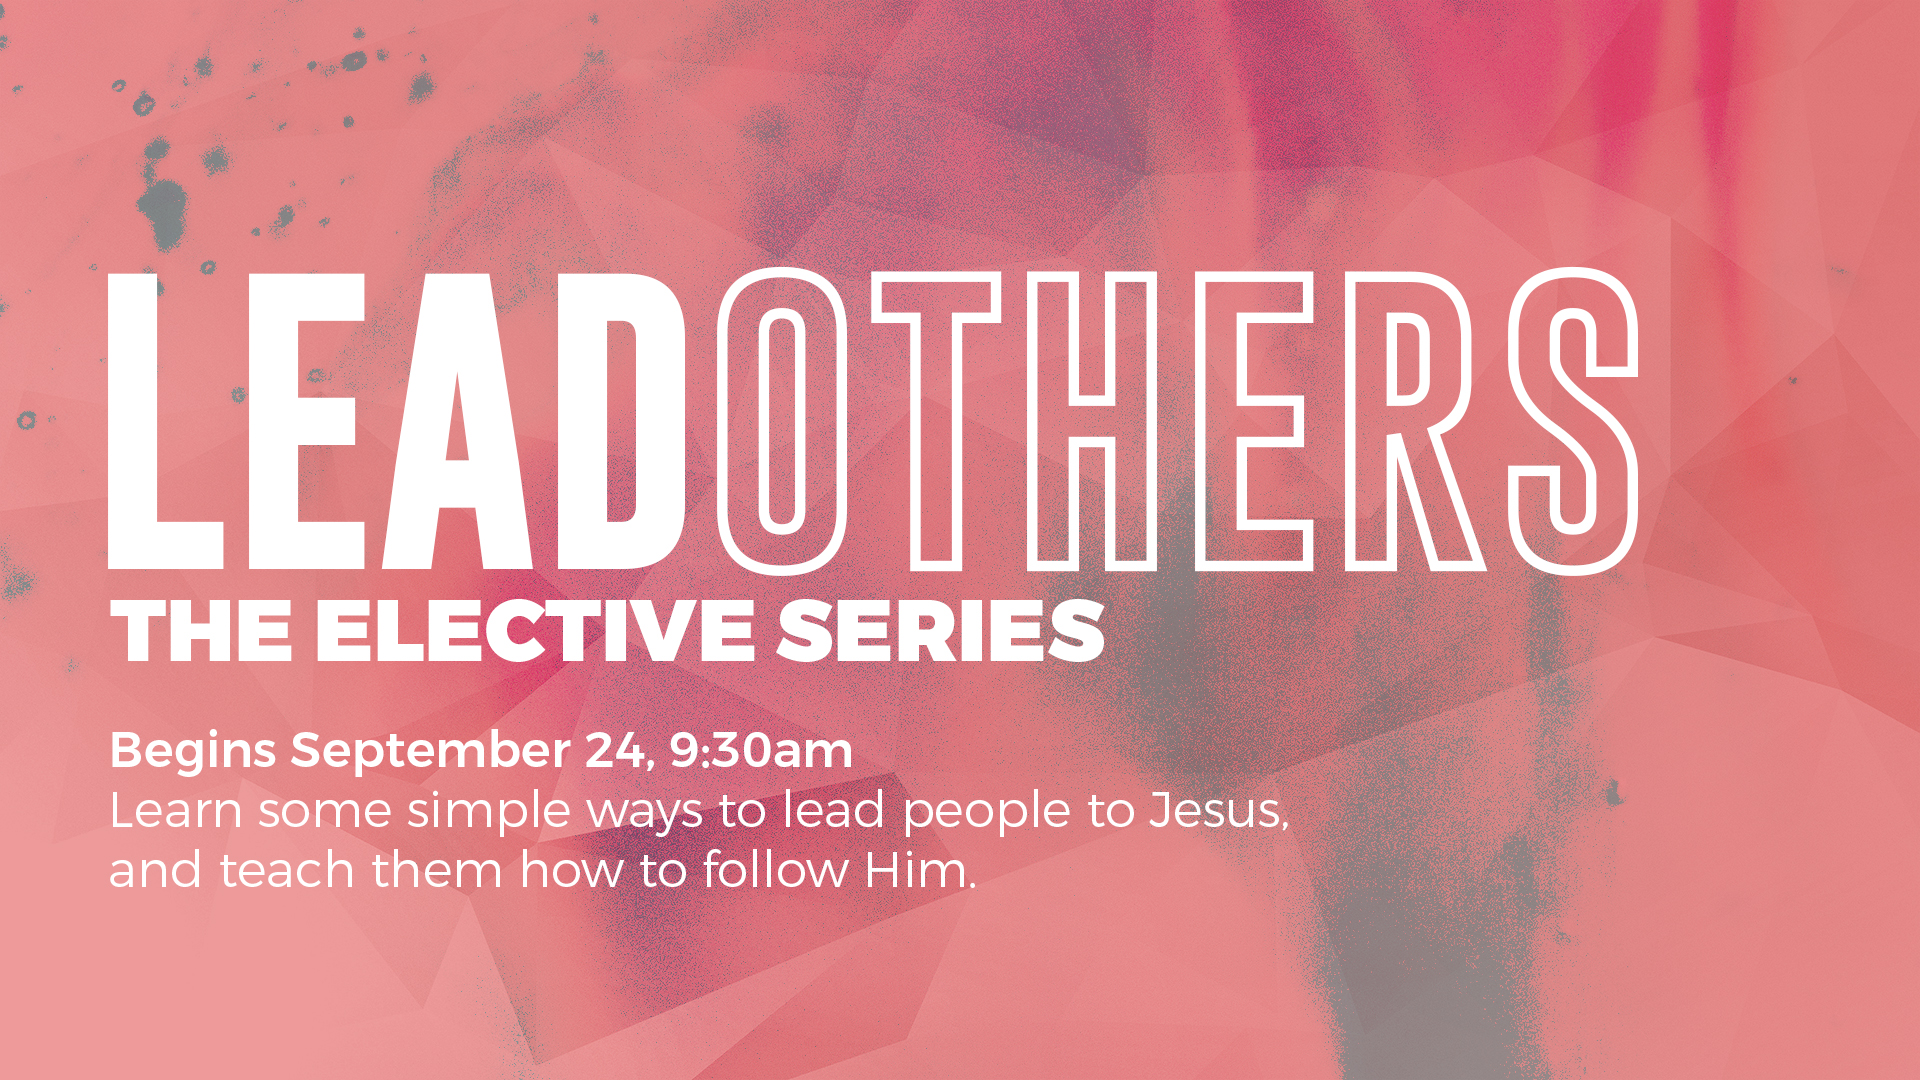 lead others elective